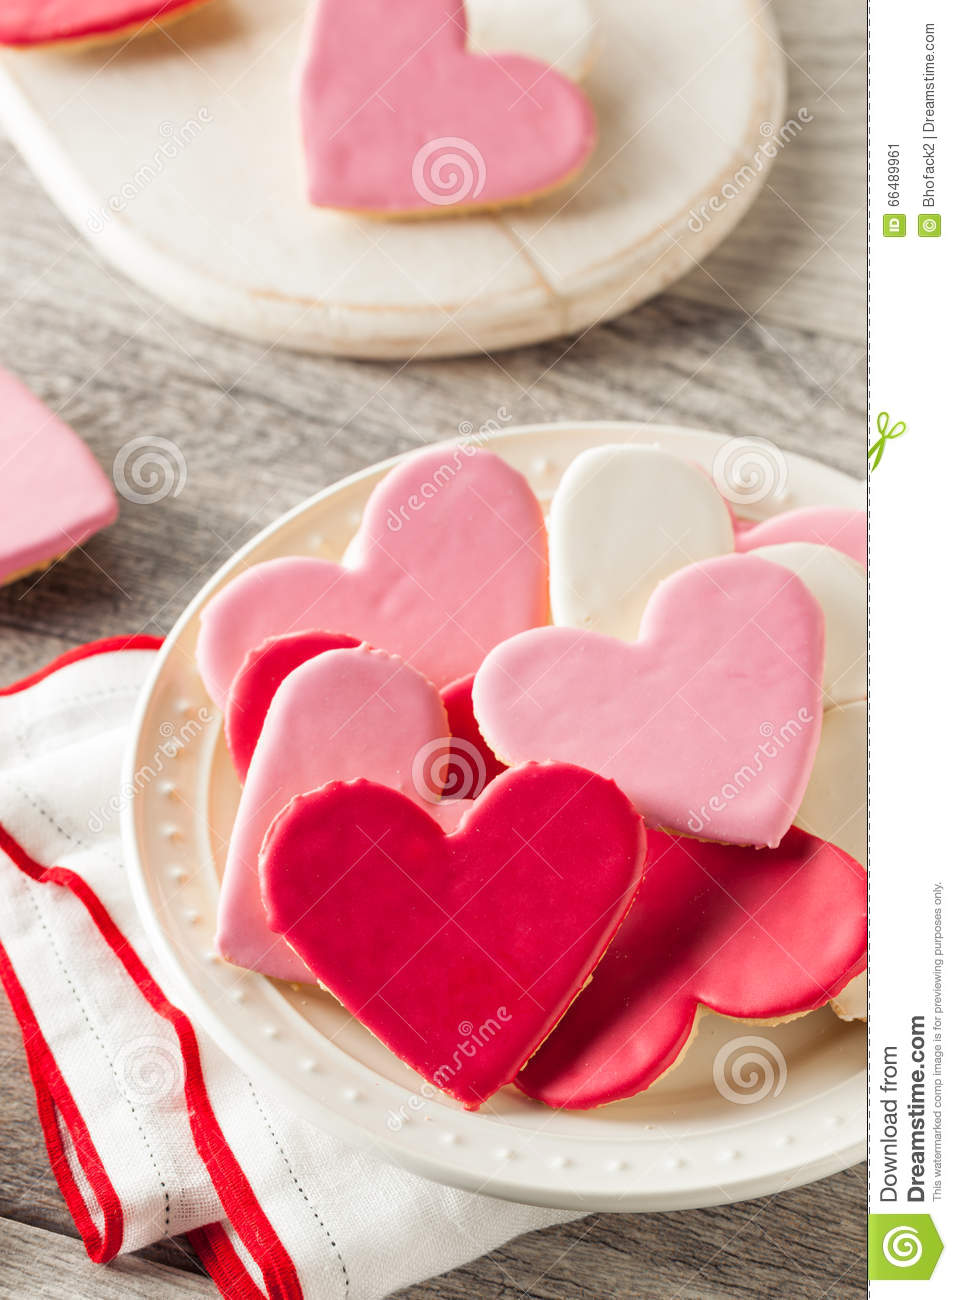 Heart Shaped Valentine S Day Sugar Cookies Stock Image Image Of